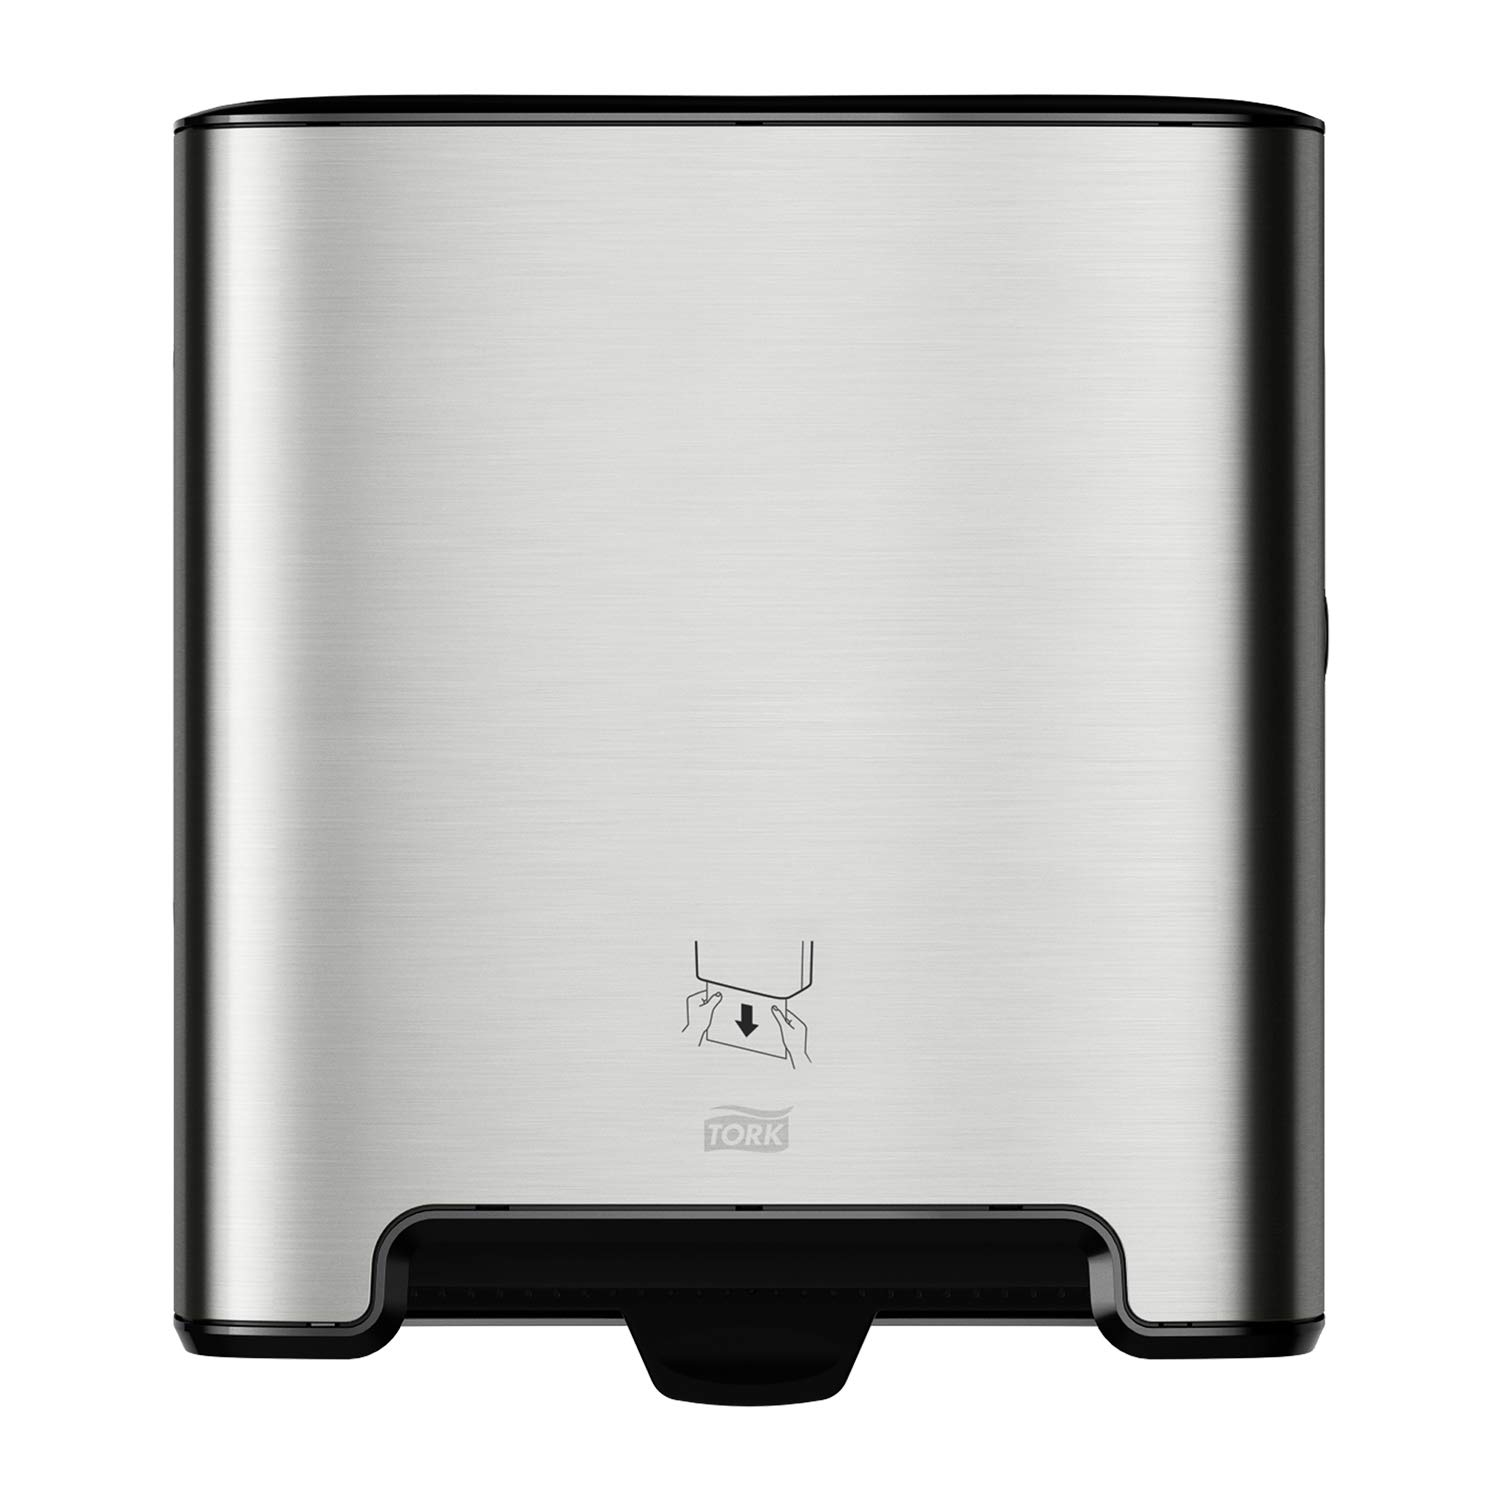 Tork Matic Paper Towel Dispenser H1, 461002, Image Design - one-at-a-time Dispensing, Stainless Steel